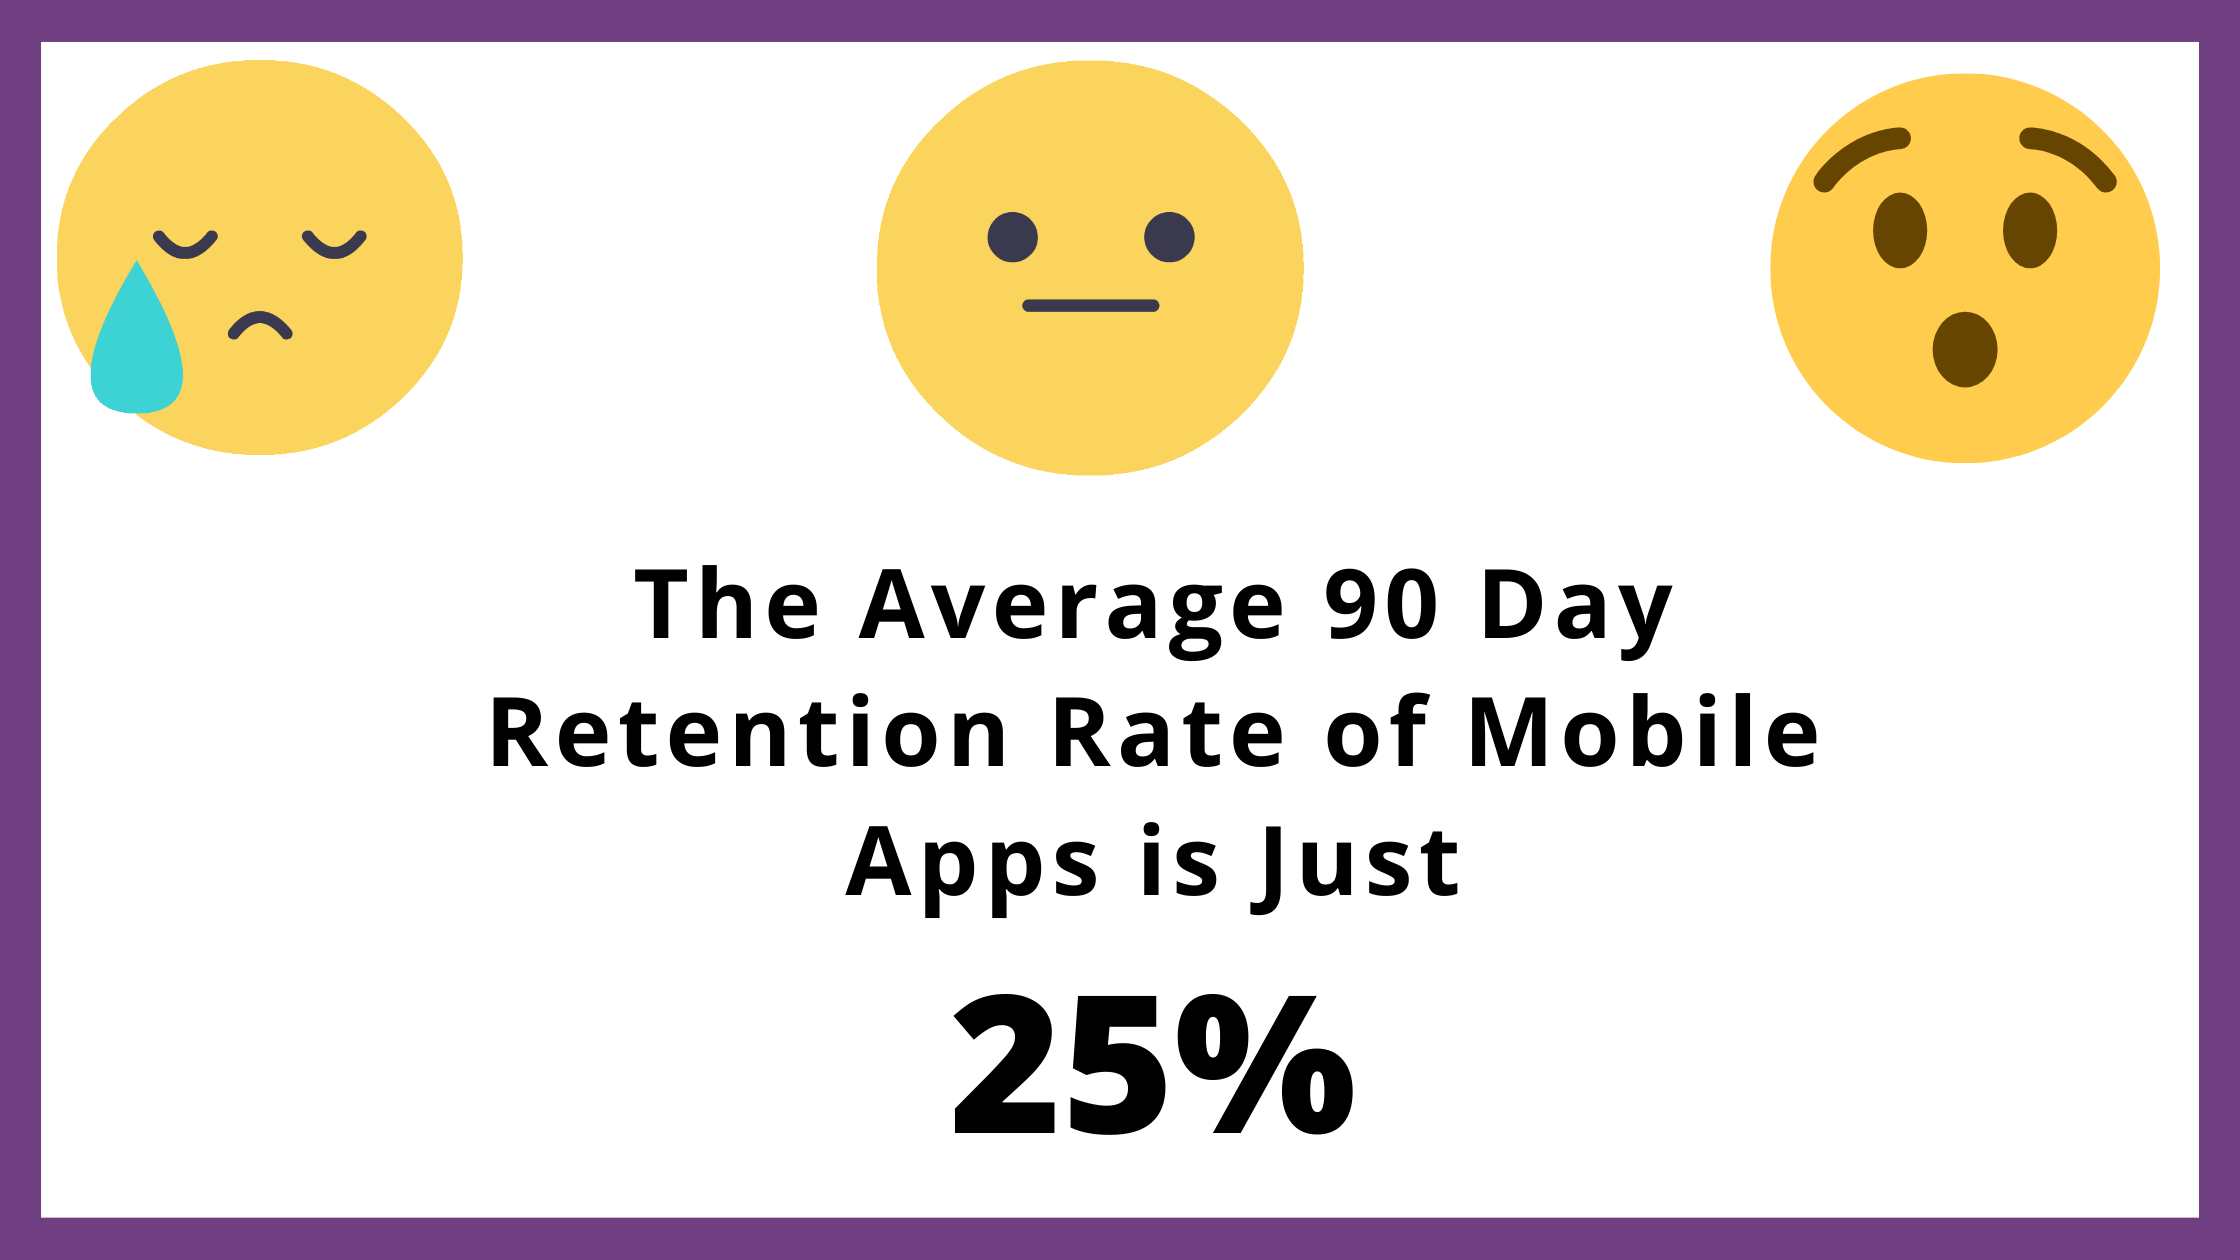 Mobile app Retention Rate Statistic